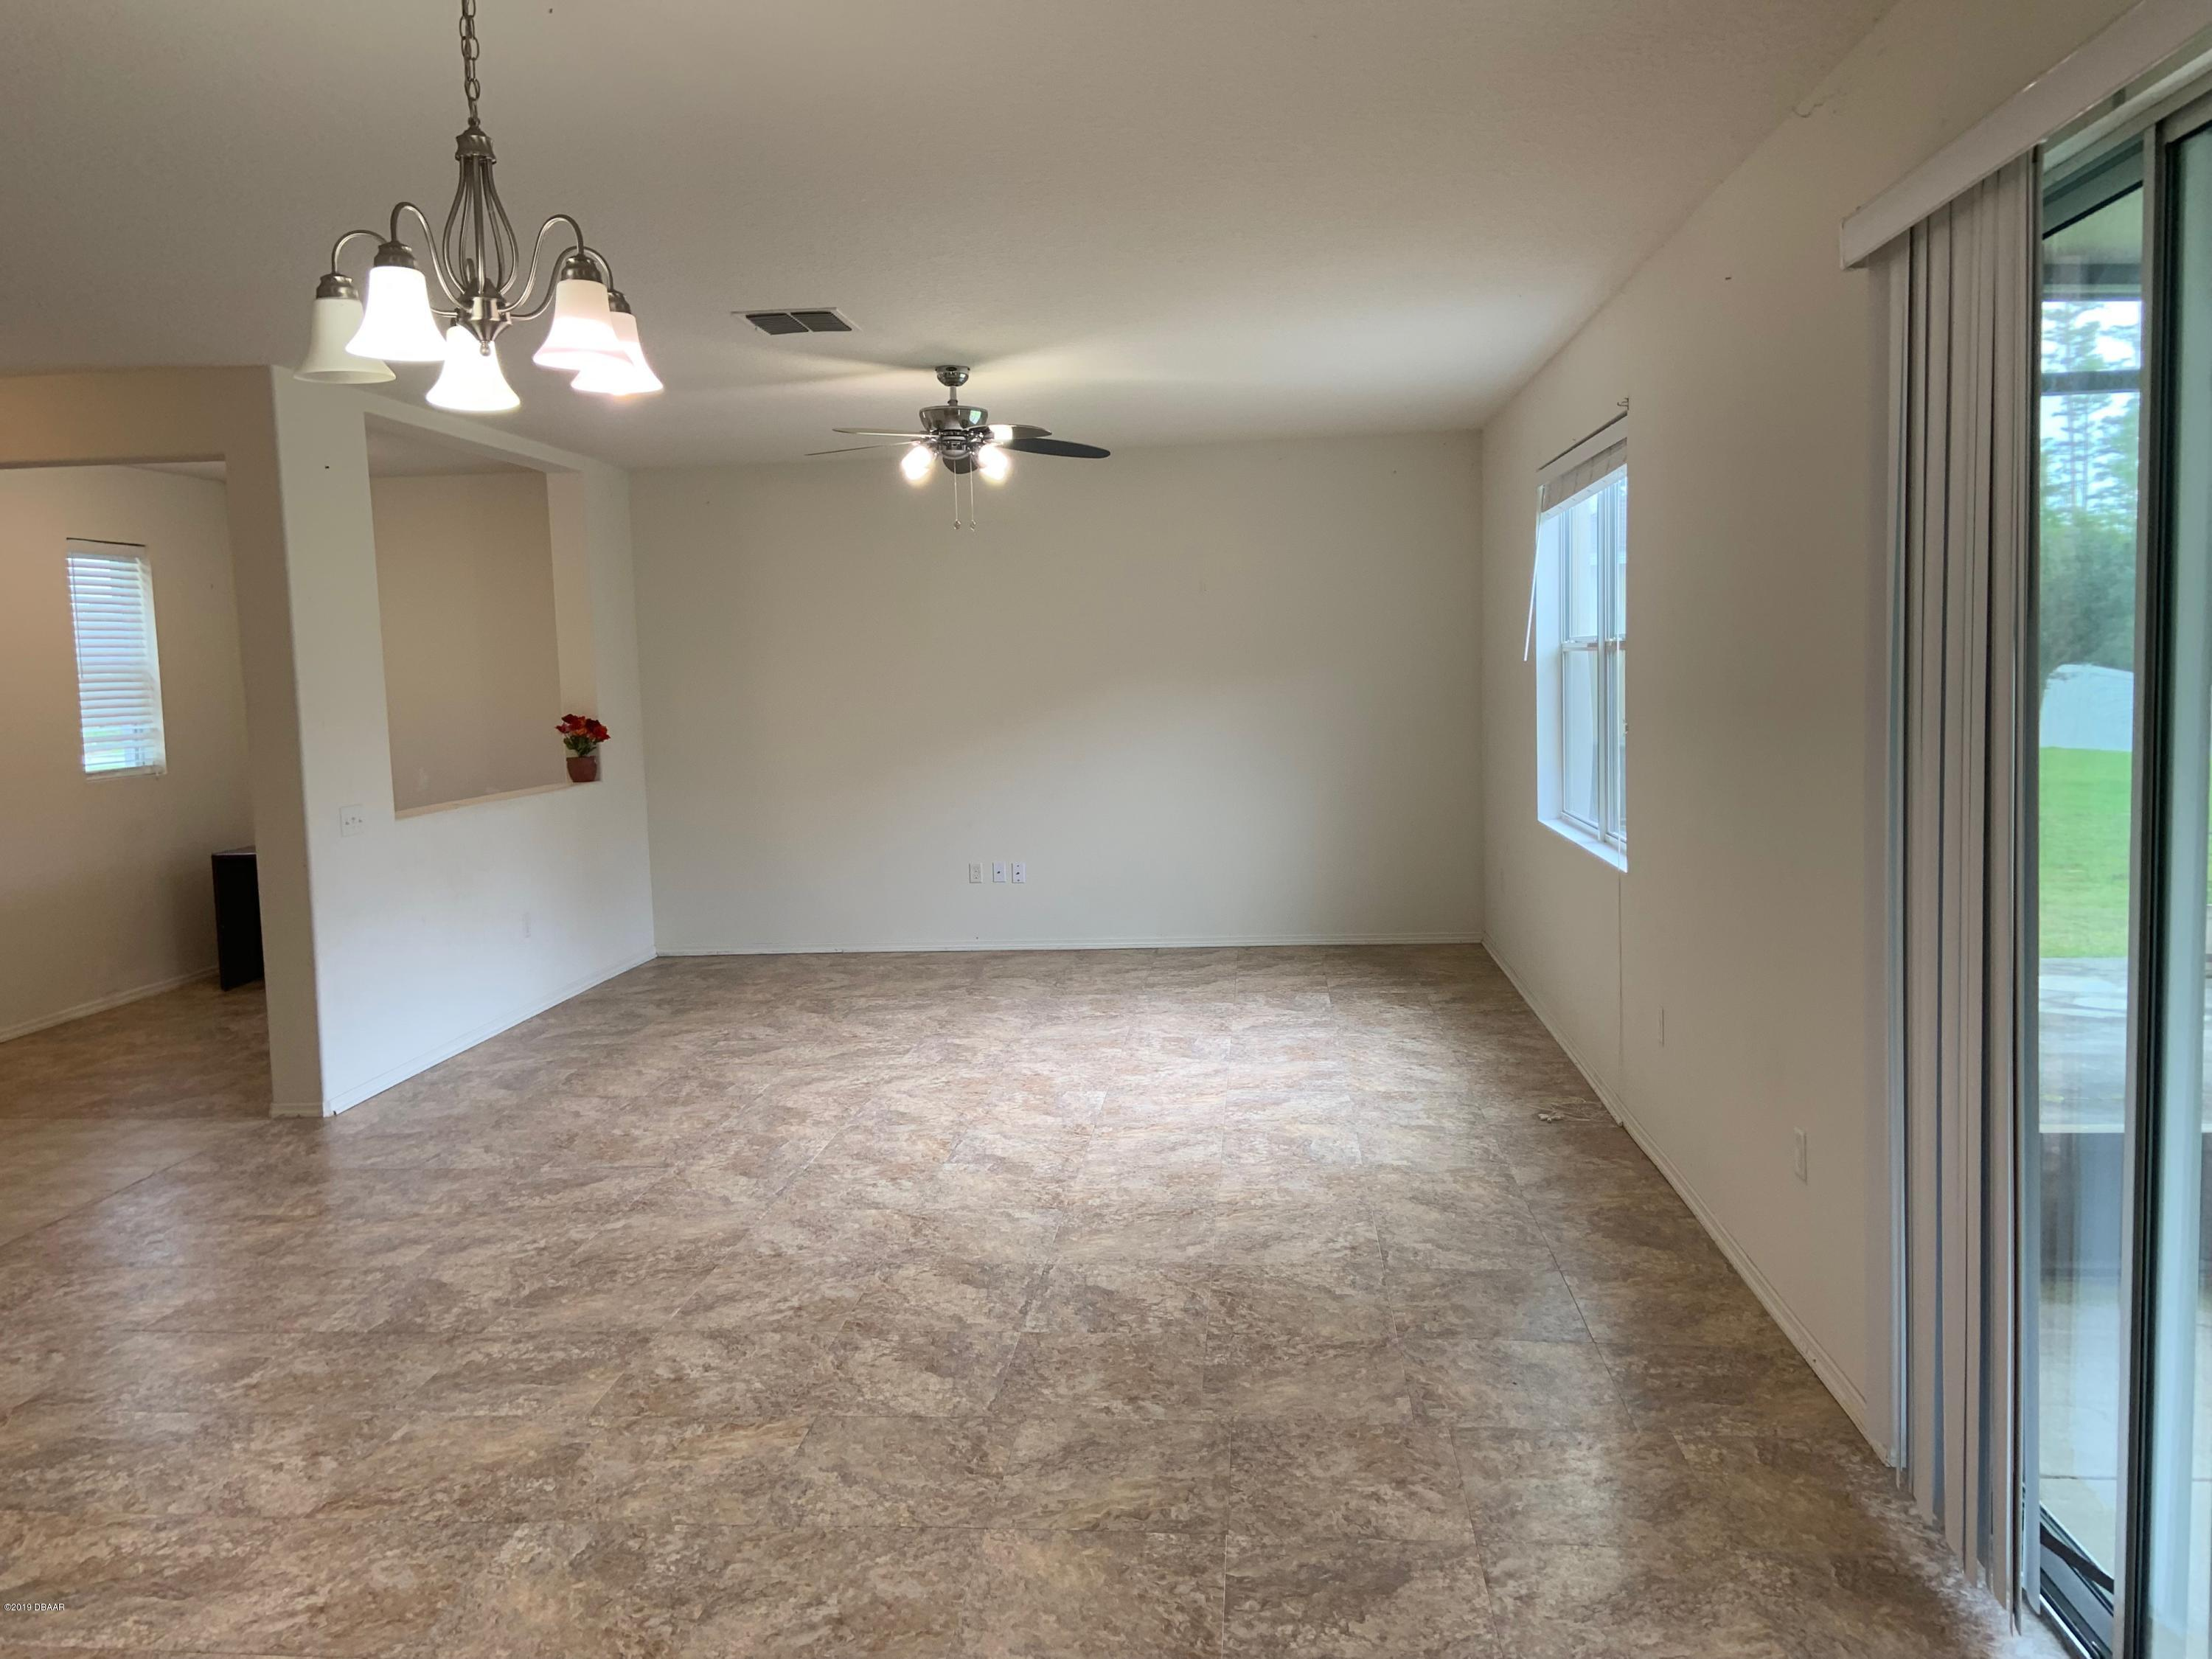 253 Thornberry Branch Daytona Beach - 3